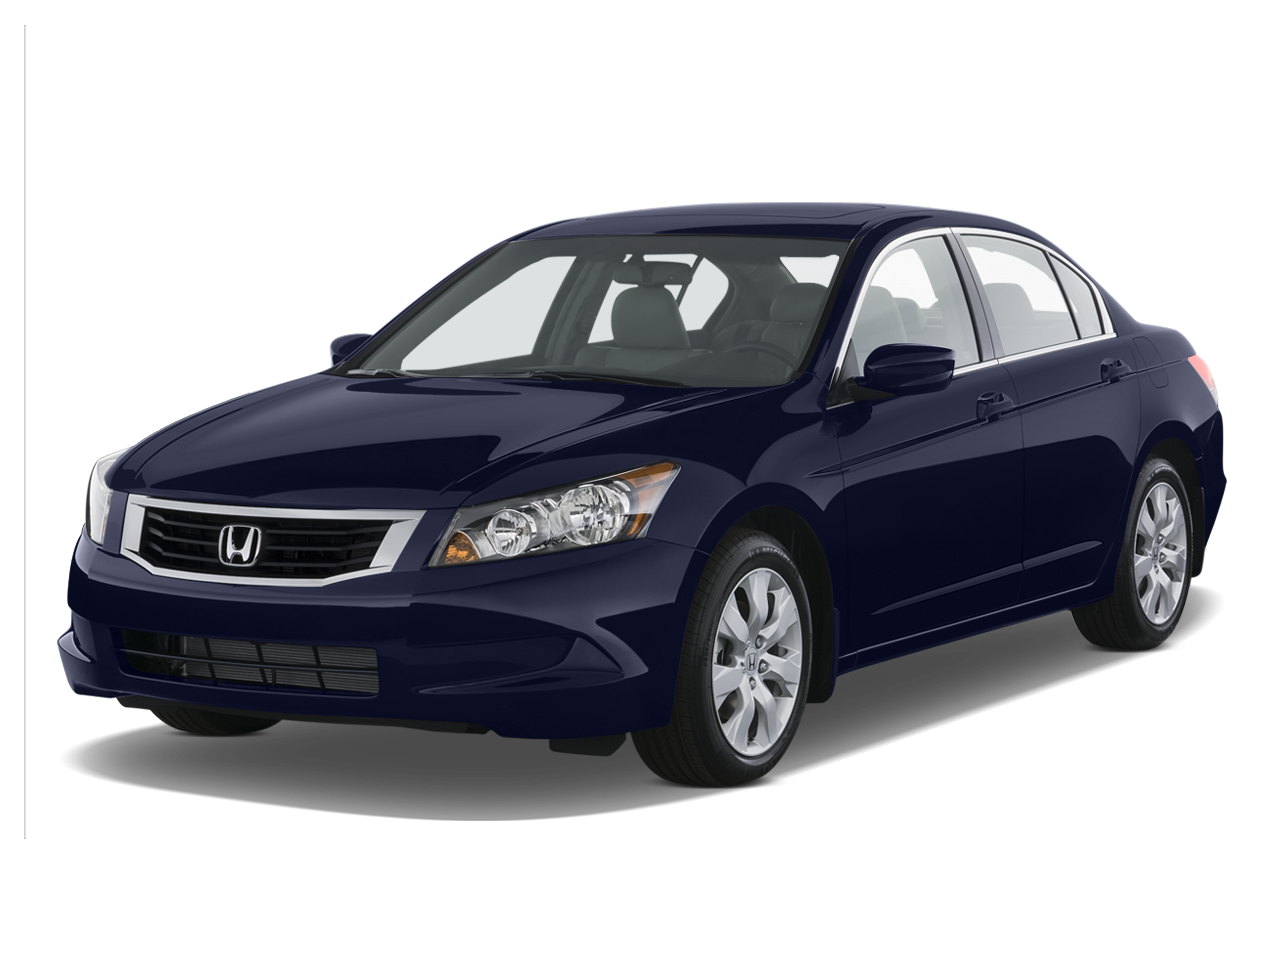 2008 Honda Accord Coupe And Sedan Latest News Features